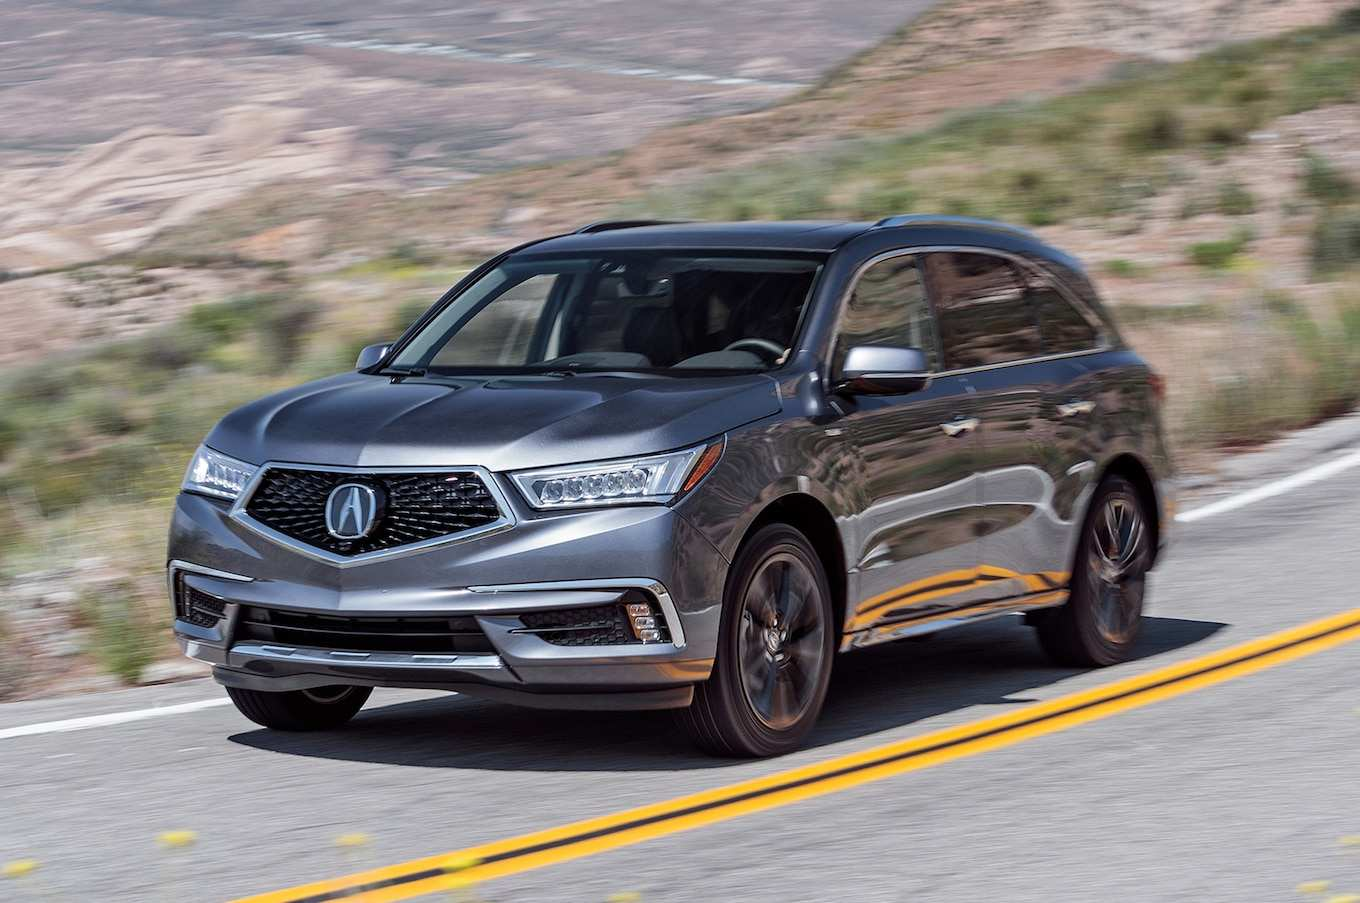 76 All New The Acura Hybrid Suv 2019 New Engine Specs and Review by The Acura Hybrid Suv 2019 New Engine